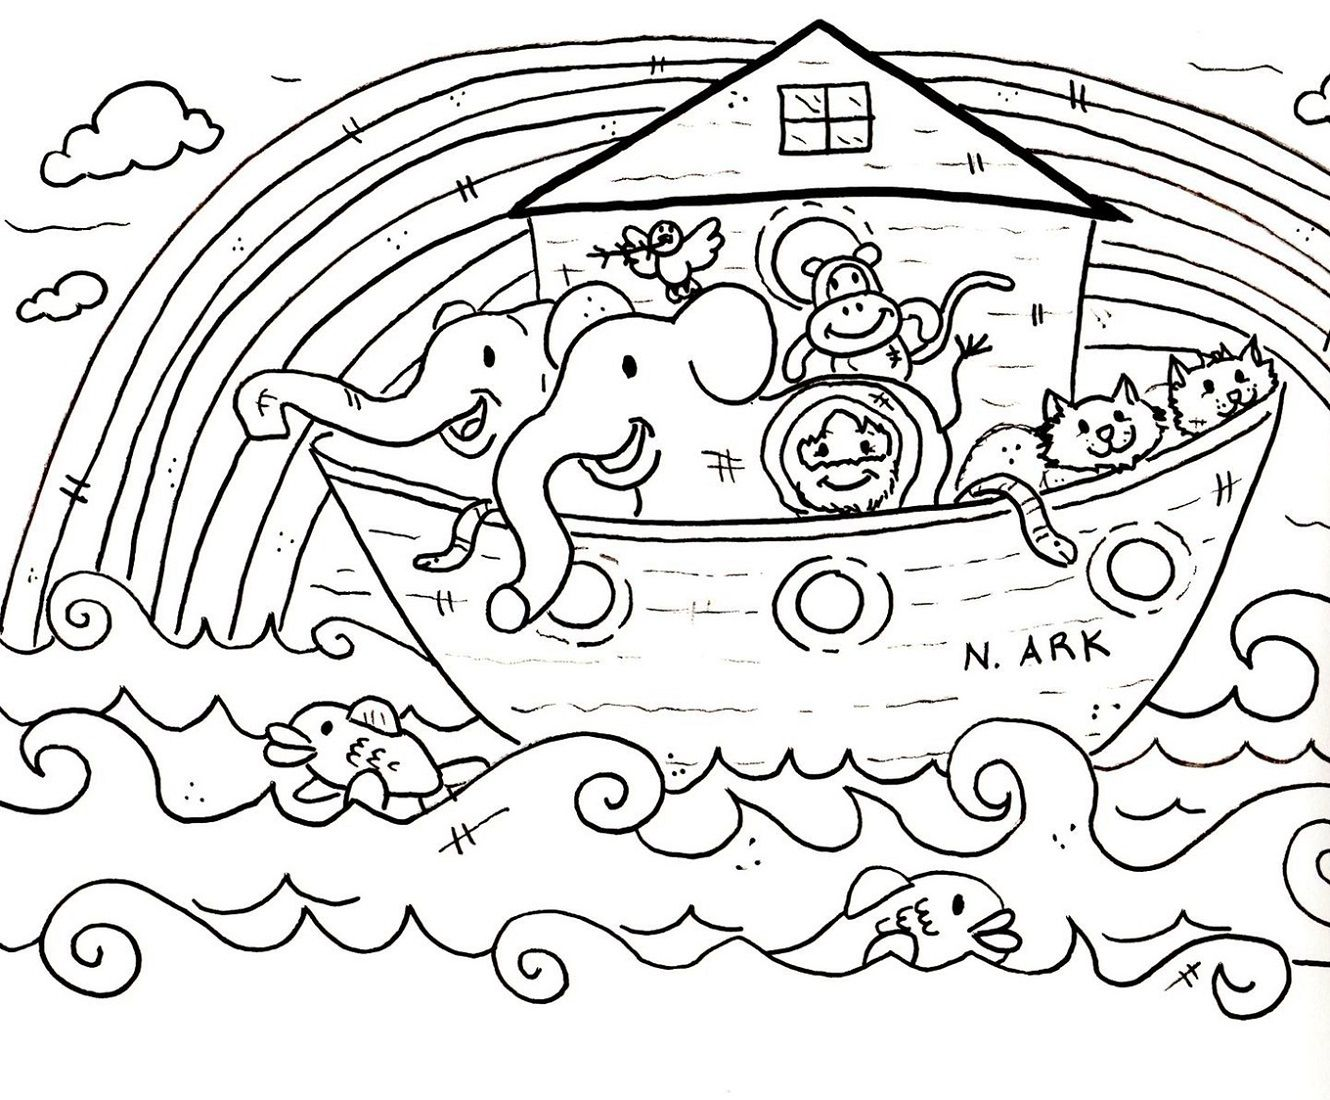 Printable Noah Ark Coloring Pictures For Children Learning Printable Bible Coloring Pages Sunday School Coloring Pages Bible Coloring